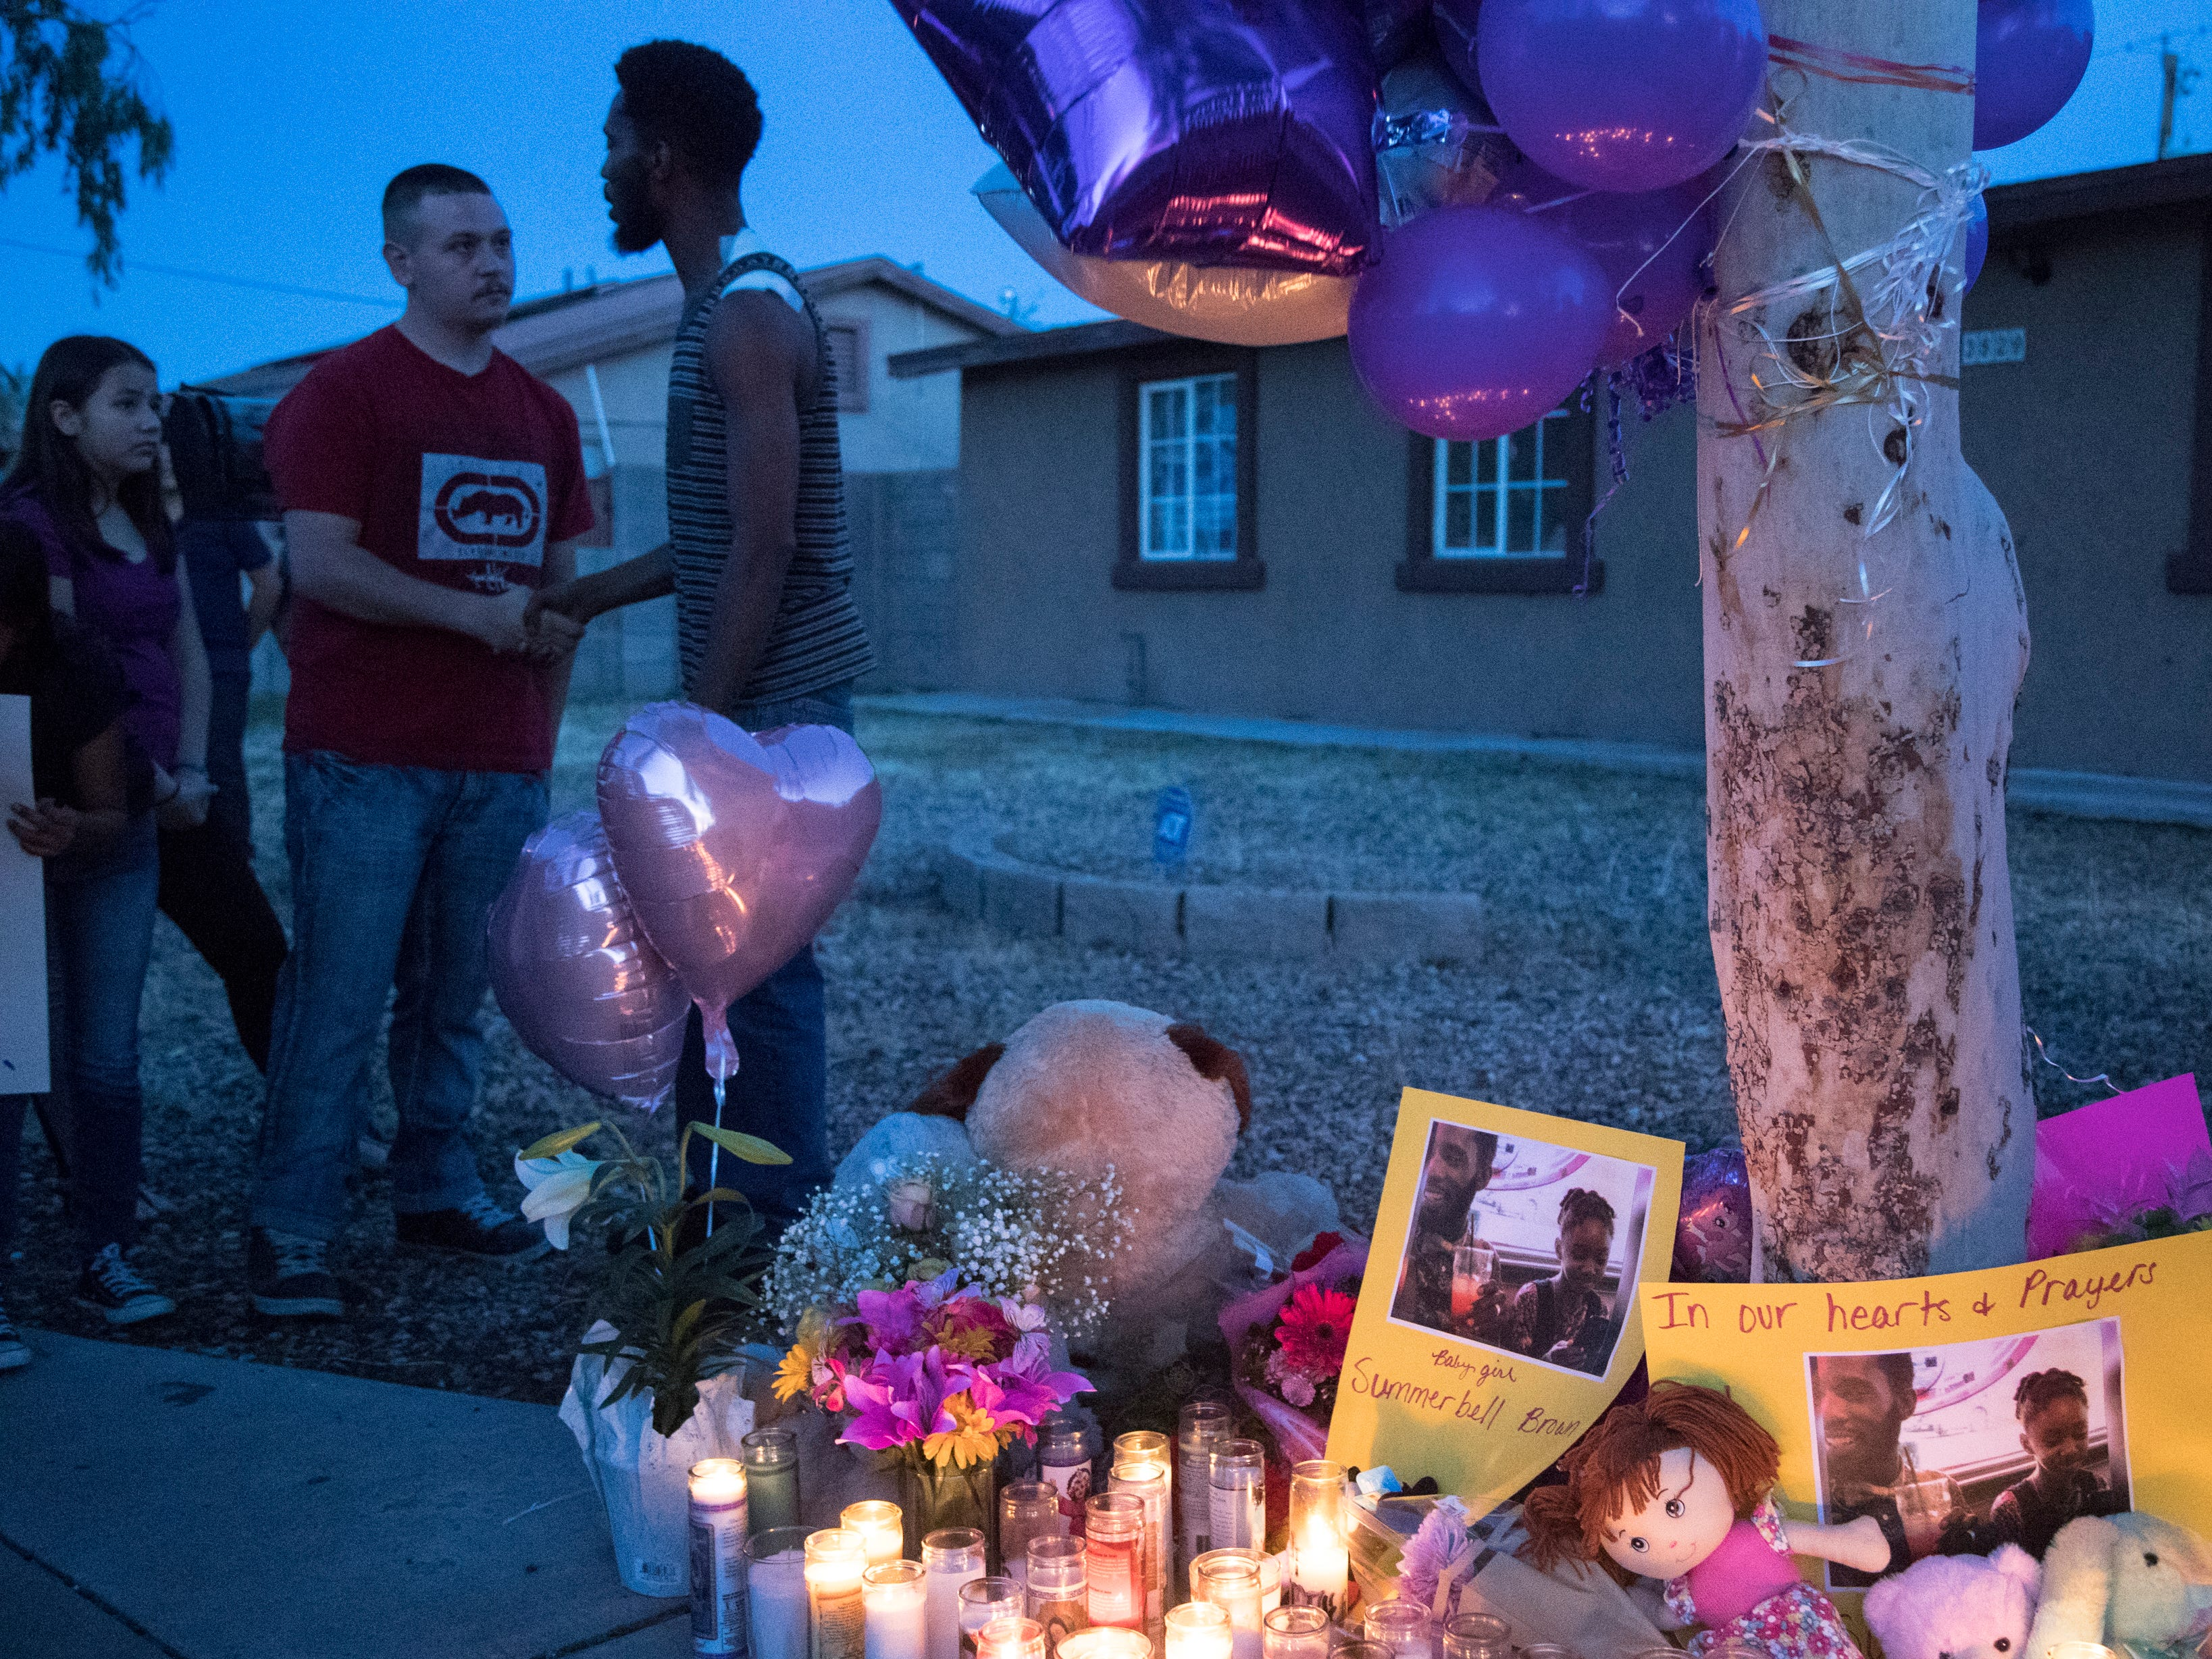 Dharquintium Brown (right, Summer's dad) is greeted by Michael Brewster (family friend) during a vigil for Summer Bell Brown on April 5, 2019.